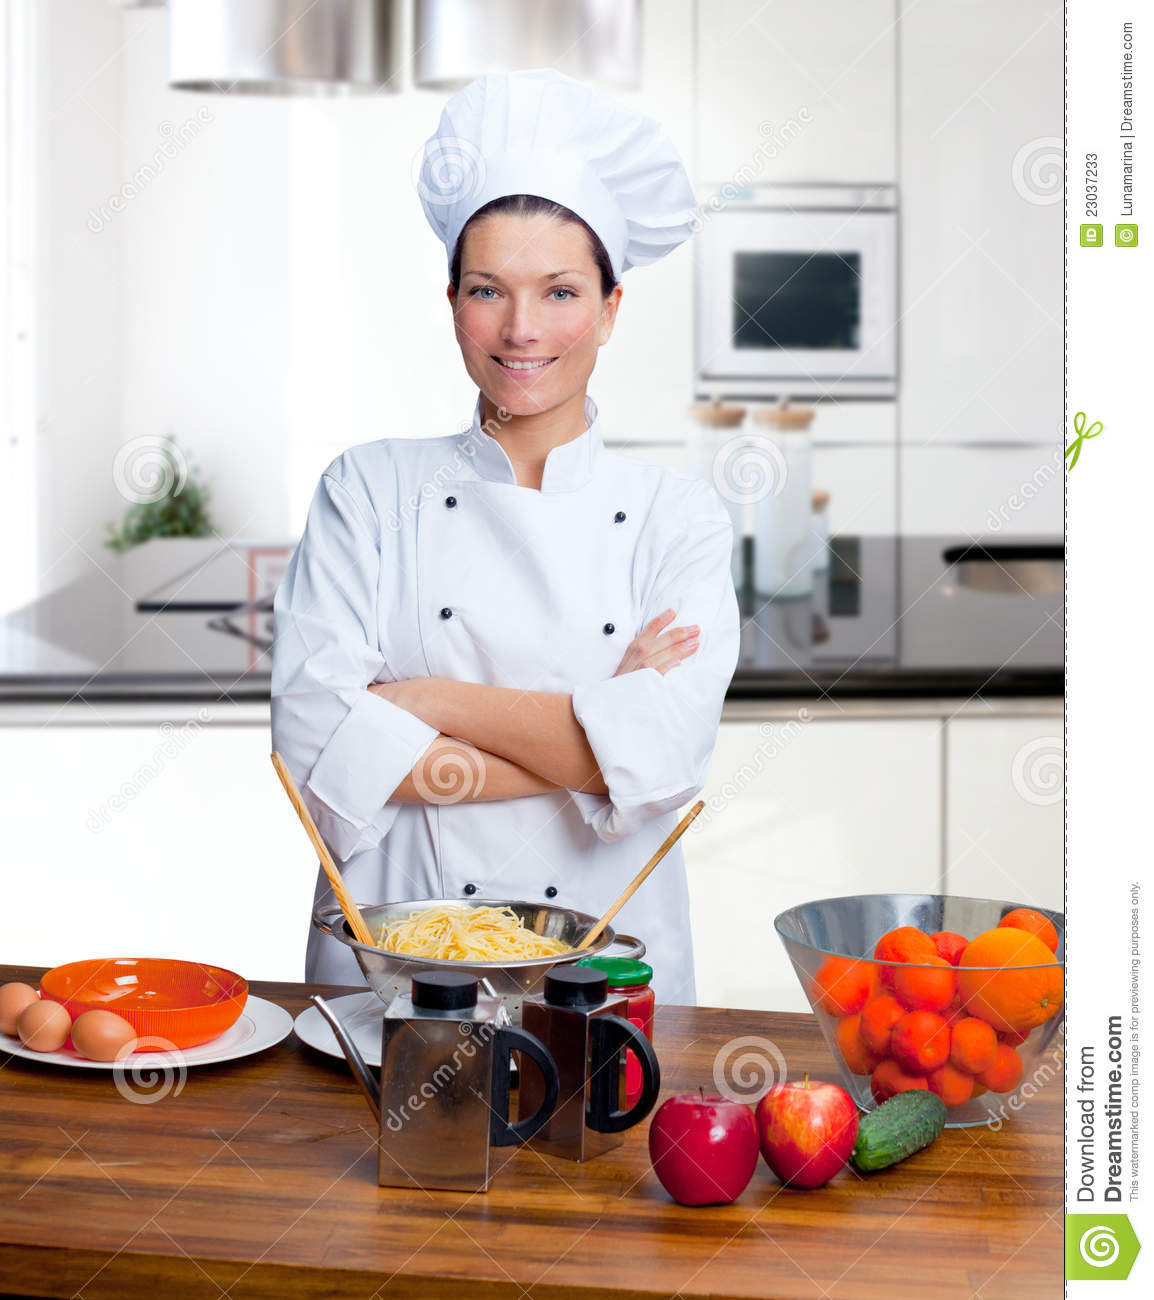 Women Kitchen: Chef Woman Portrait In The Kitchen Stock Image